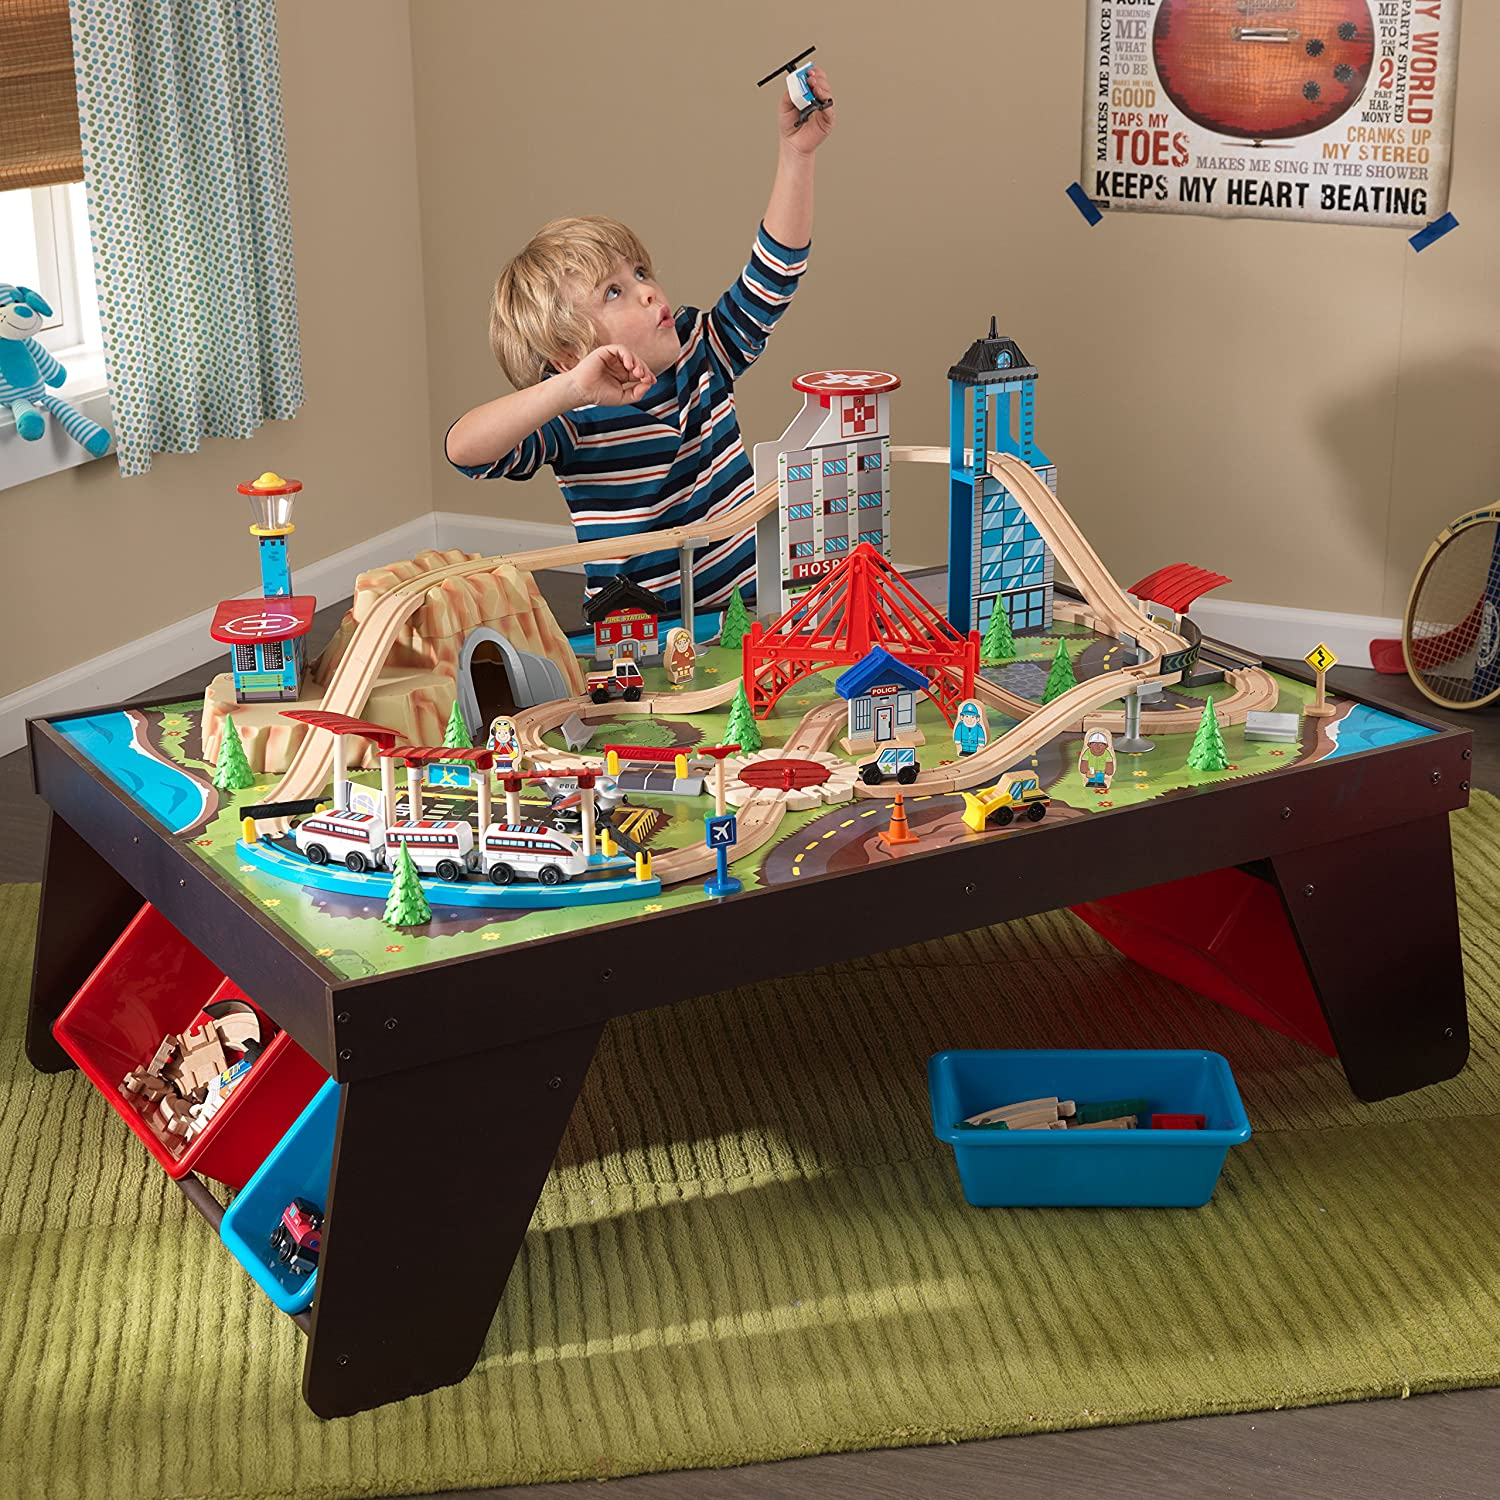 Amazon.com: KidKraft Aero City Train Set & Table: Toys & Games